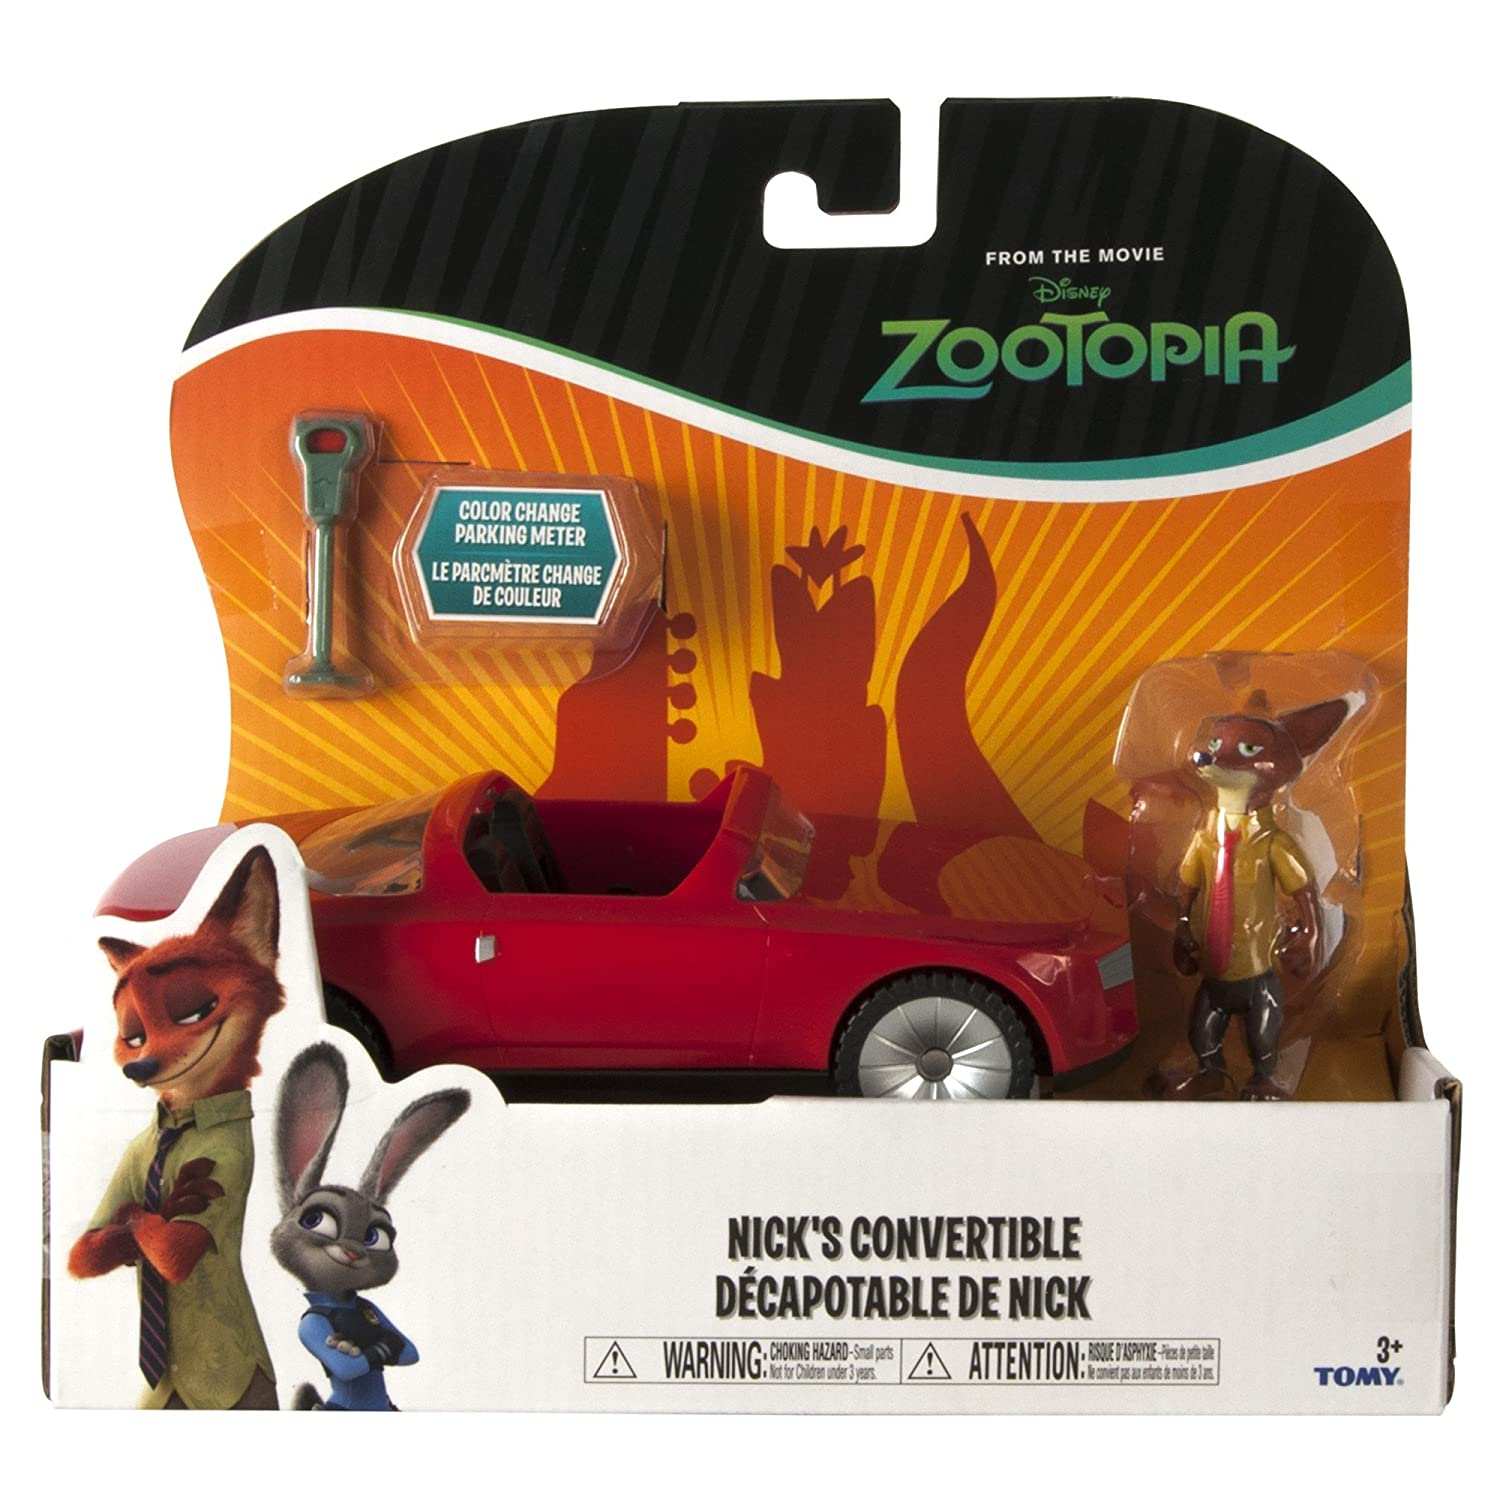 81FTePA-pnL._SL1500_ Cool Review About Zootopia Cars with Inspiring Images Cars Review